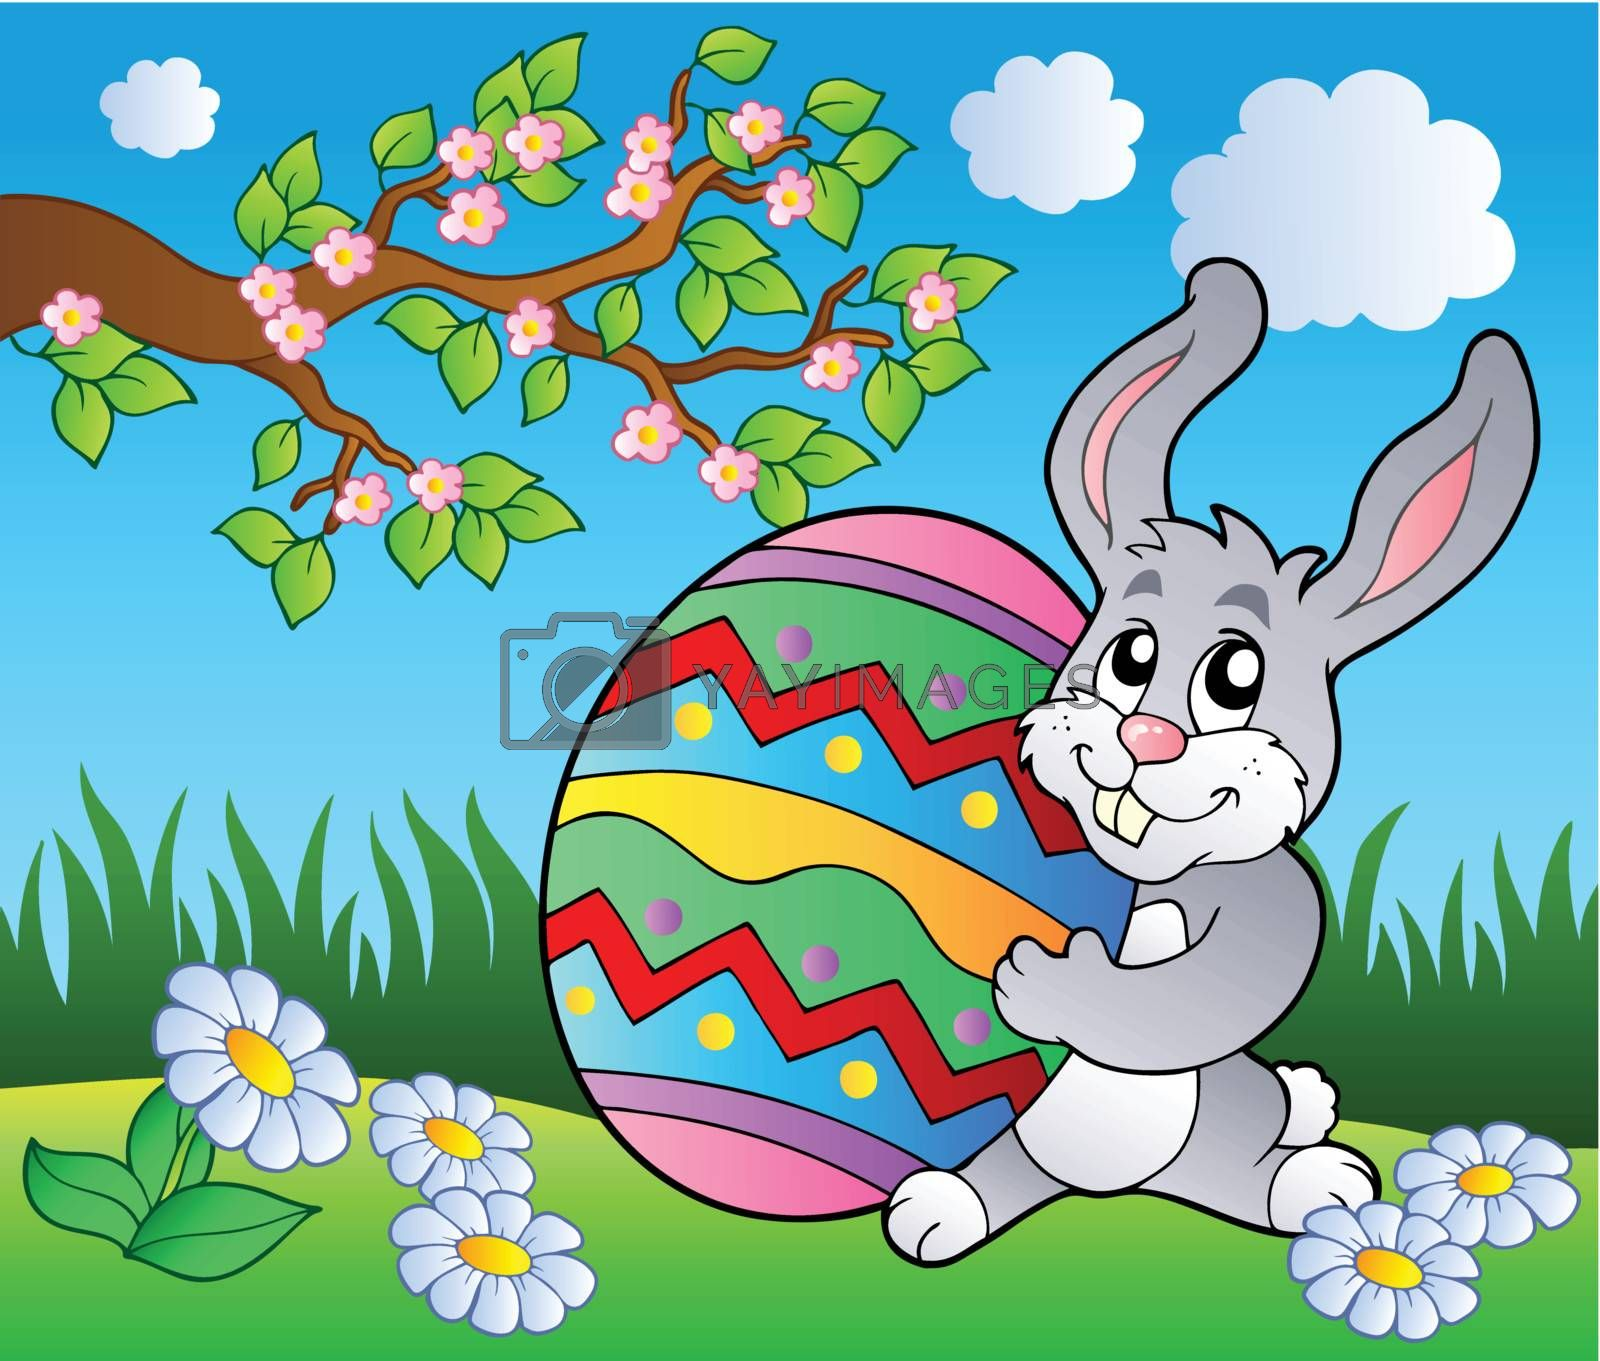 Spring meadow with bunny and egg - vector illustration.